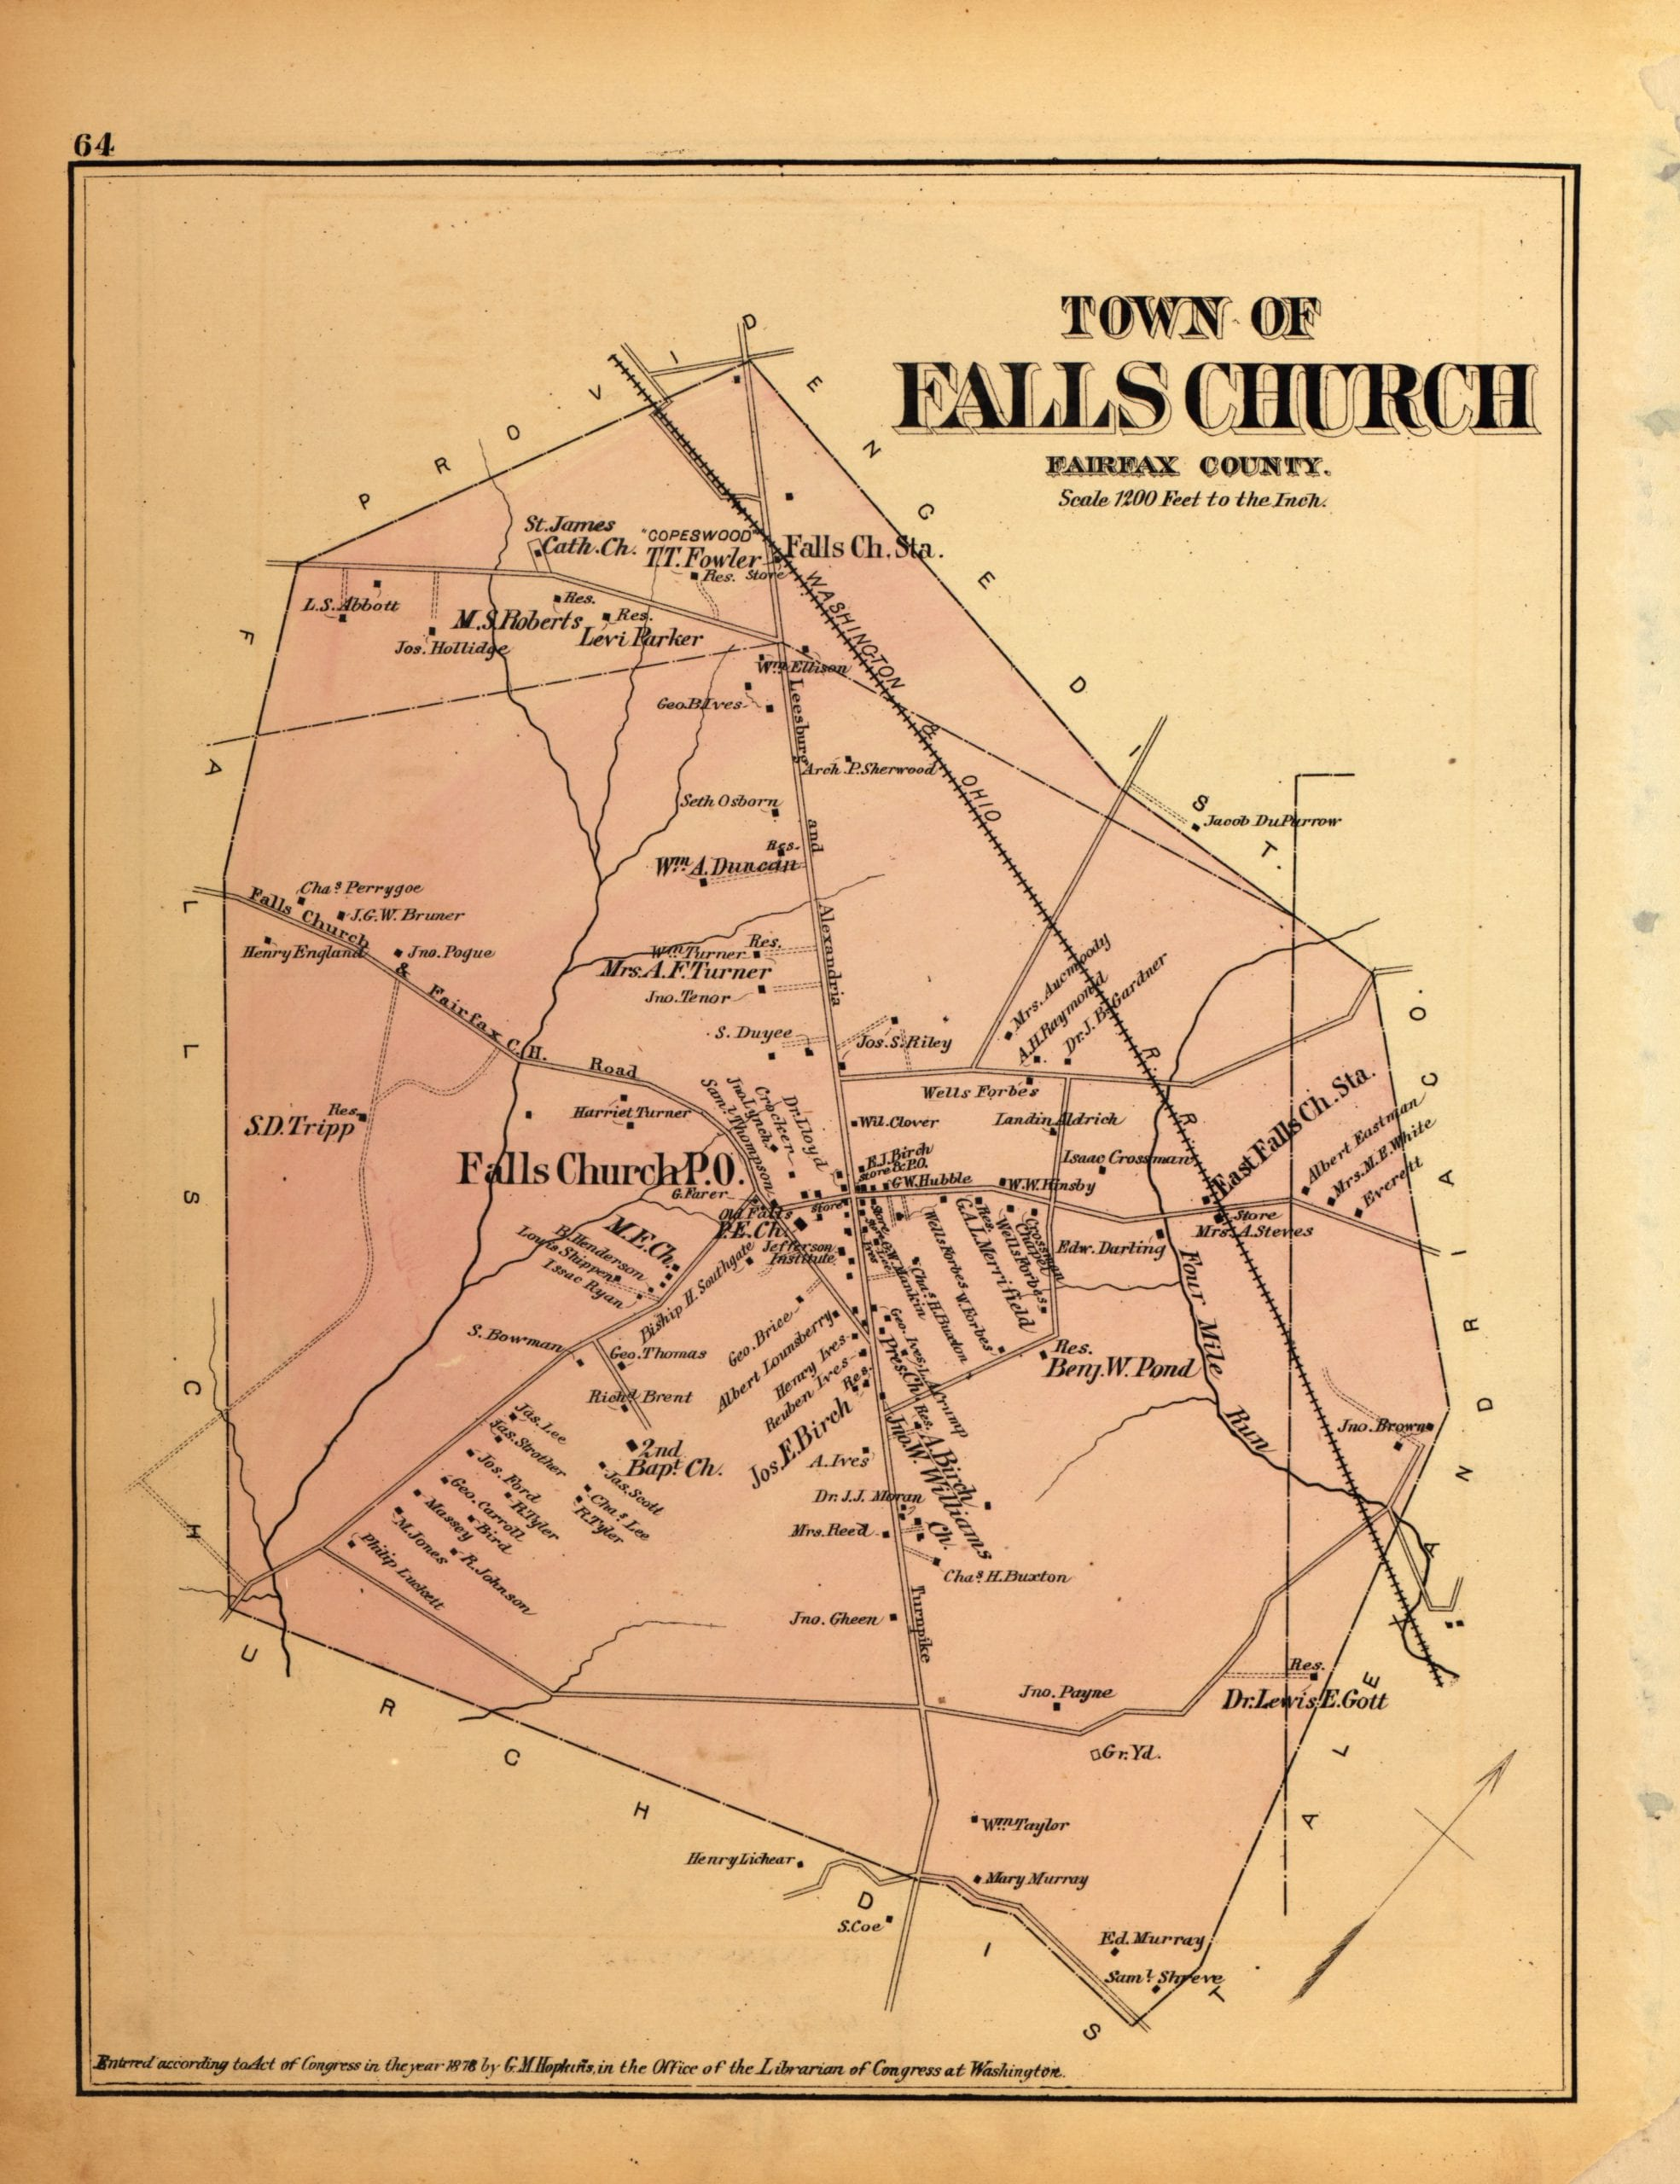 Map of area surrounding Falls Church in 1879